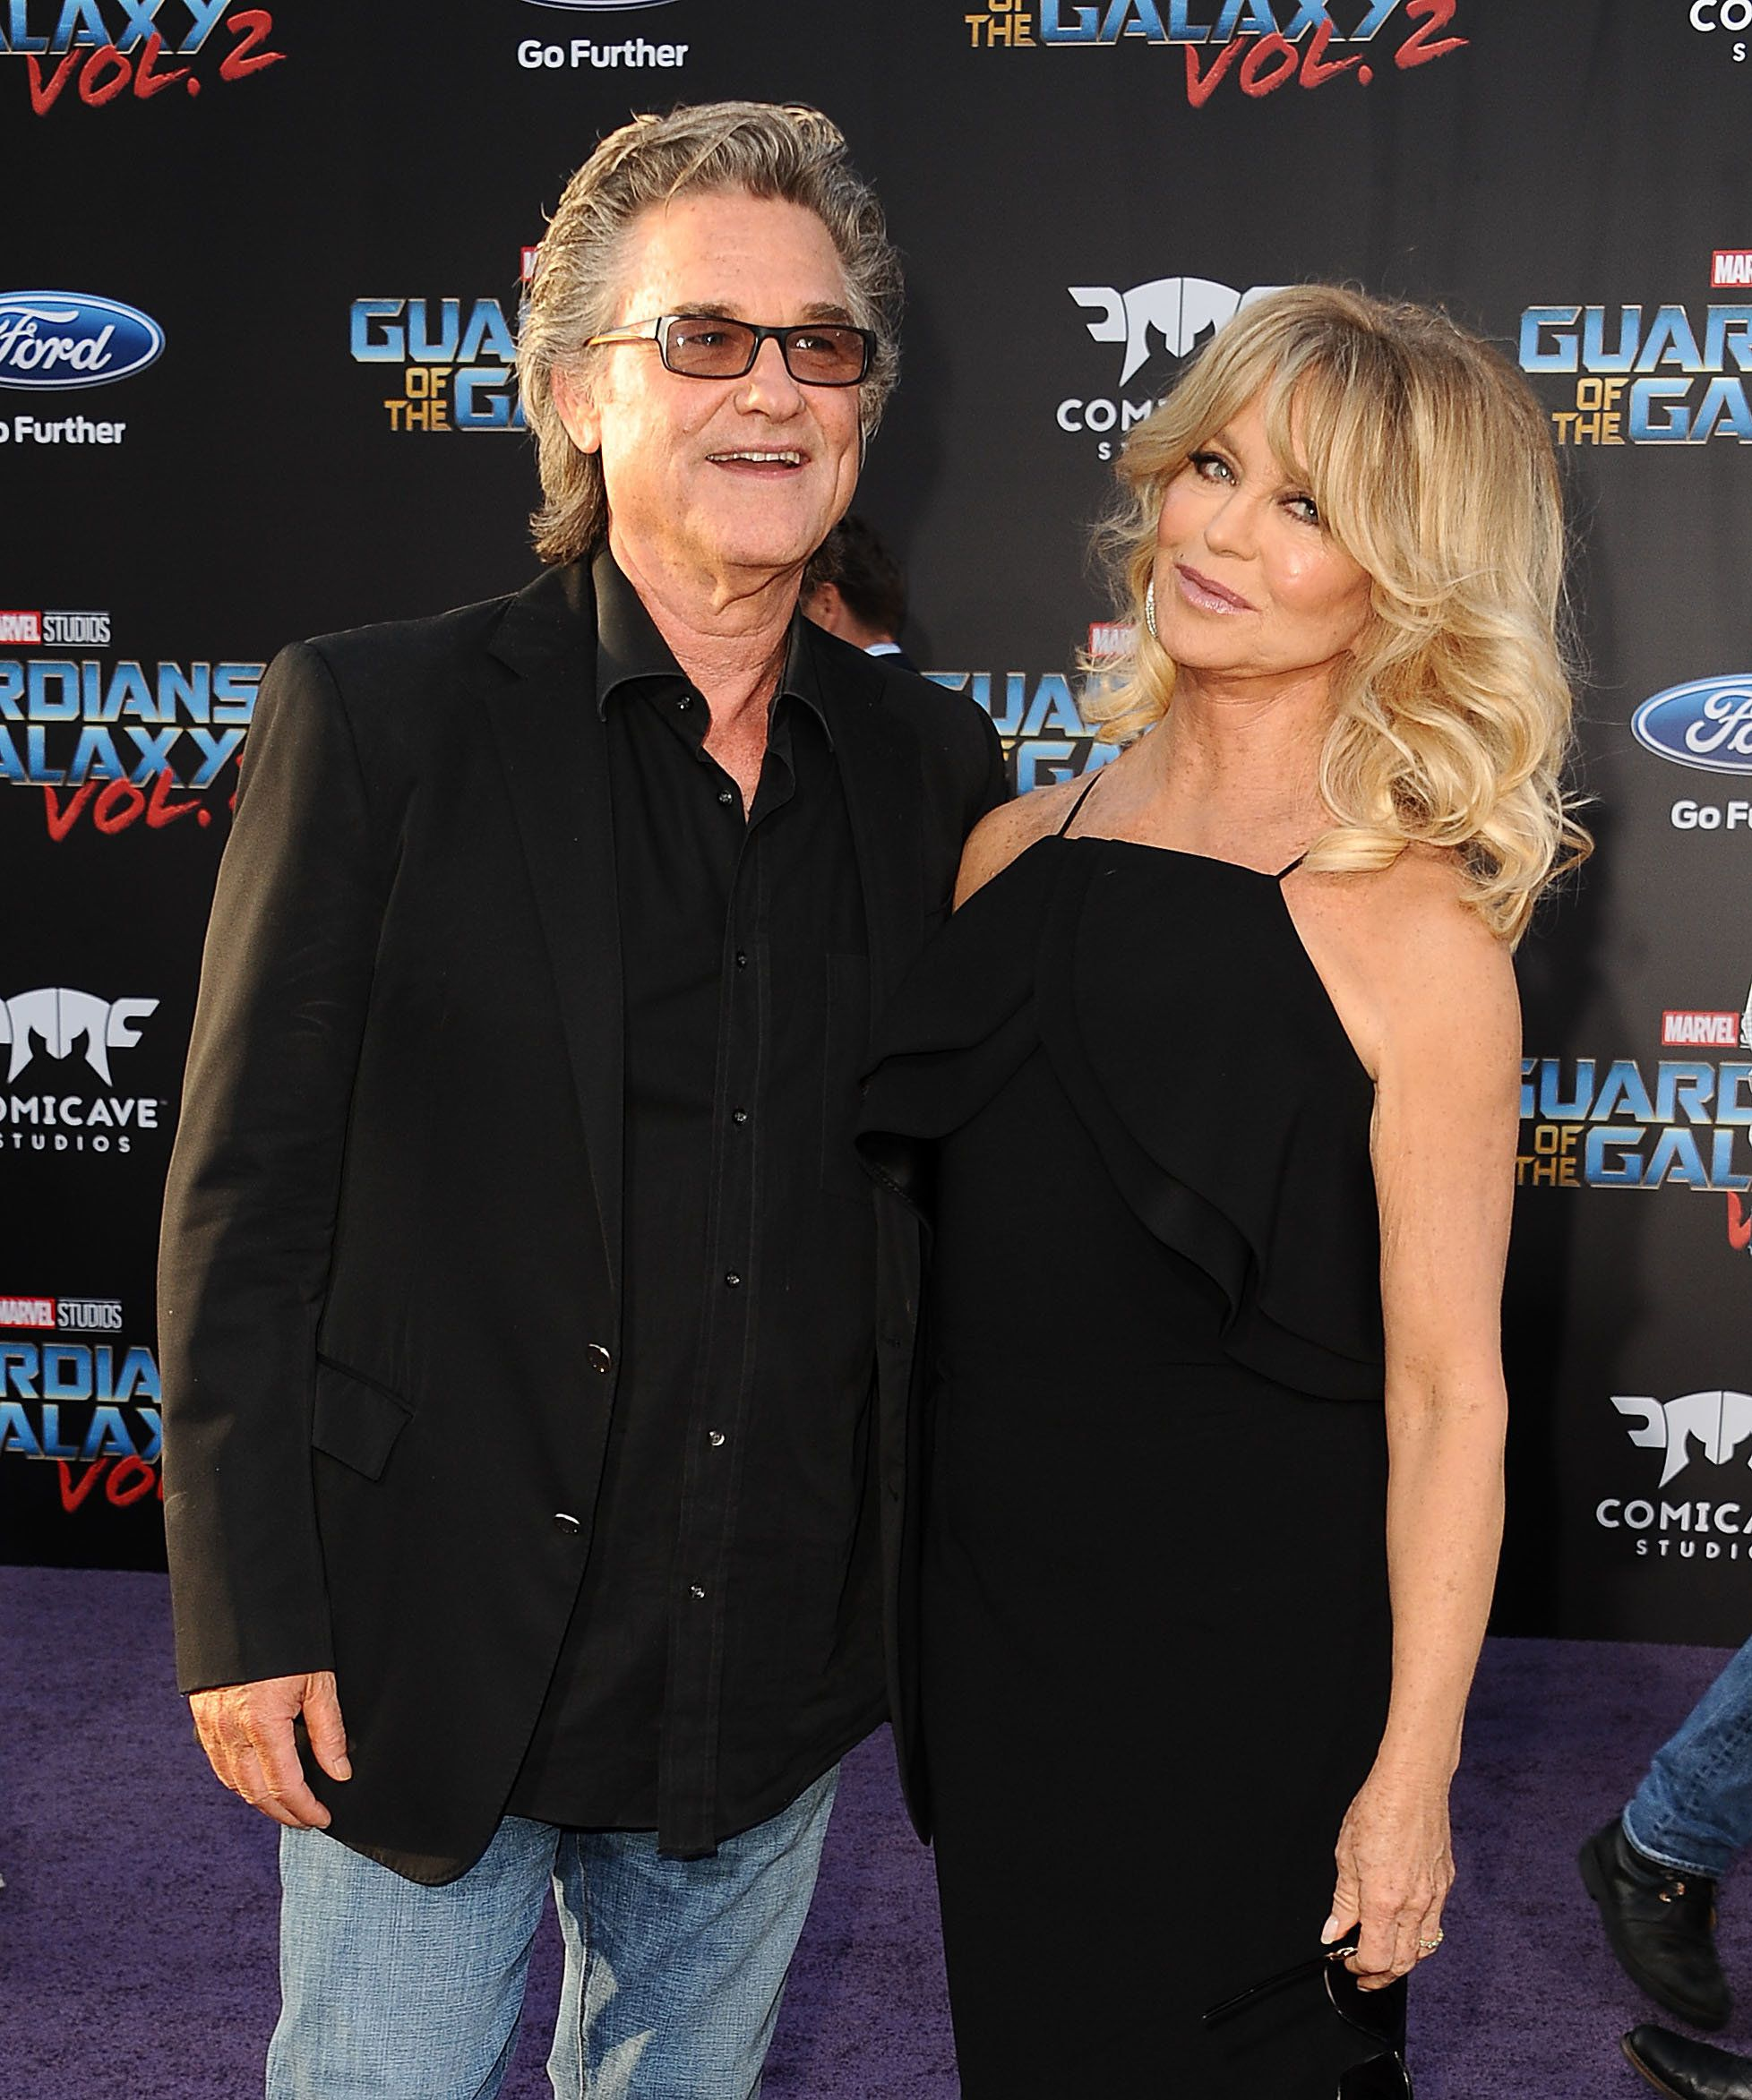 HOLLYWOOD, CA - APRIL 19:  Actor Kurt Russell and actress Goldie Hawn attend the premiere of 'Guardians of the Galaxy Vol. 2' at Dolby Theatre on April 19, 2017 in Hollywood, California.  (Photo by Jason LaVeris/FilmMagic)